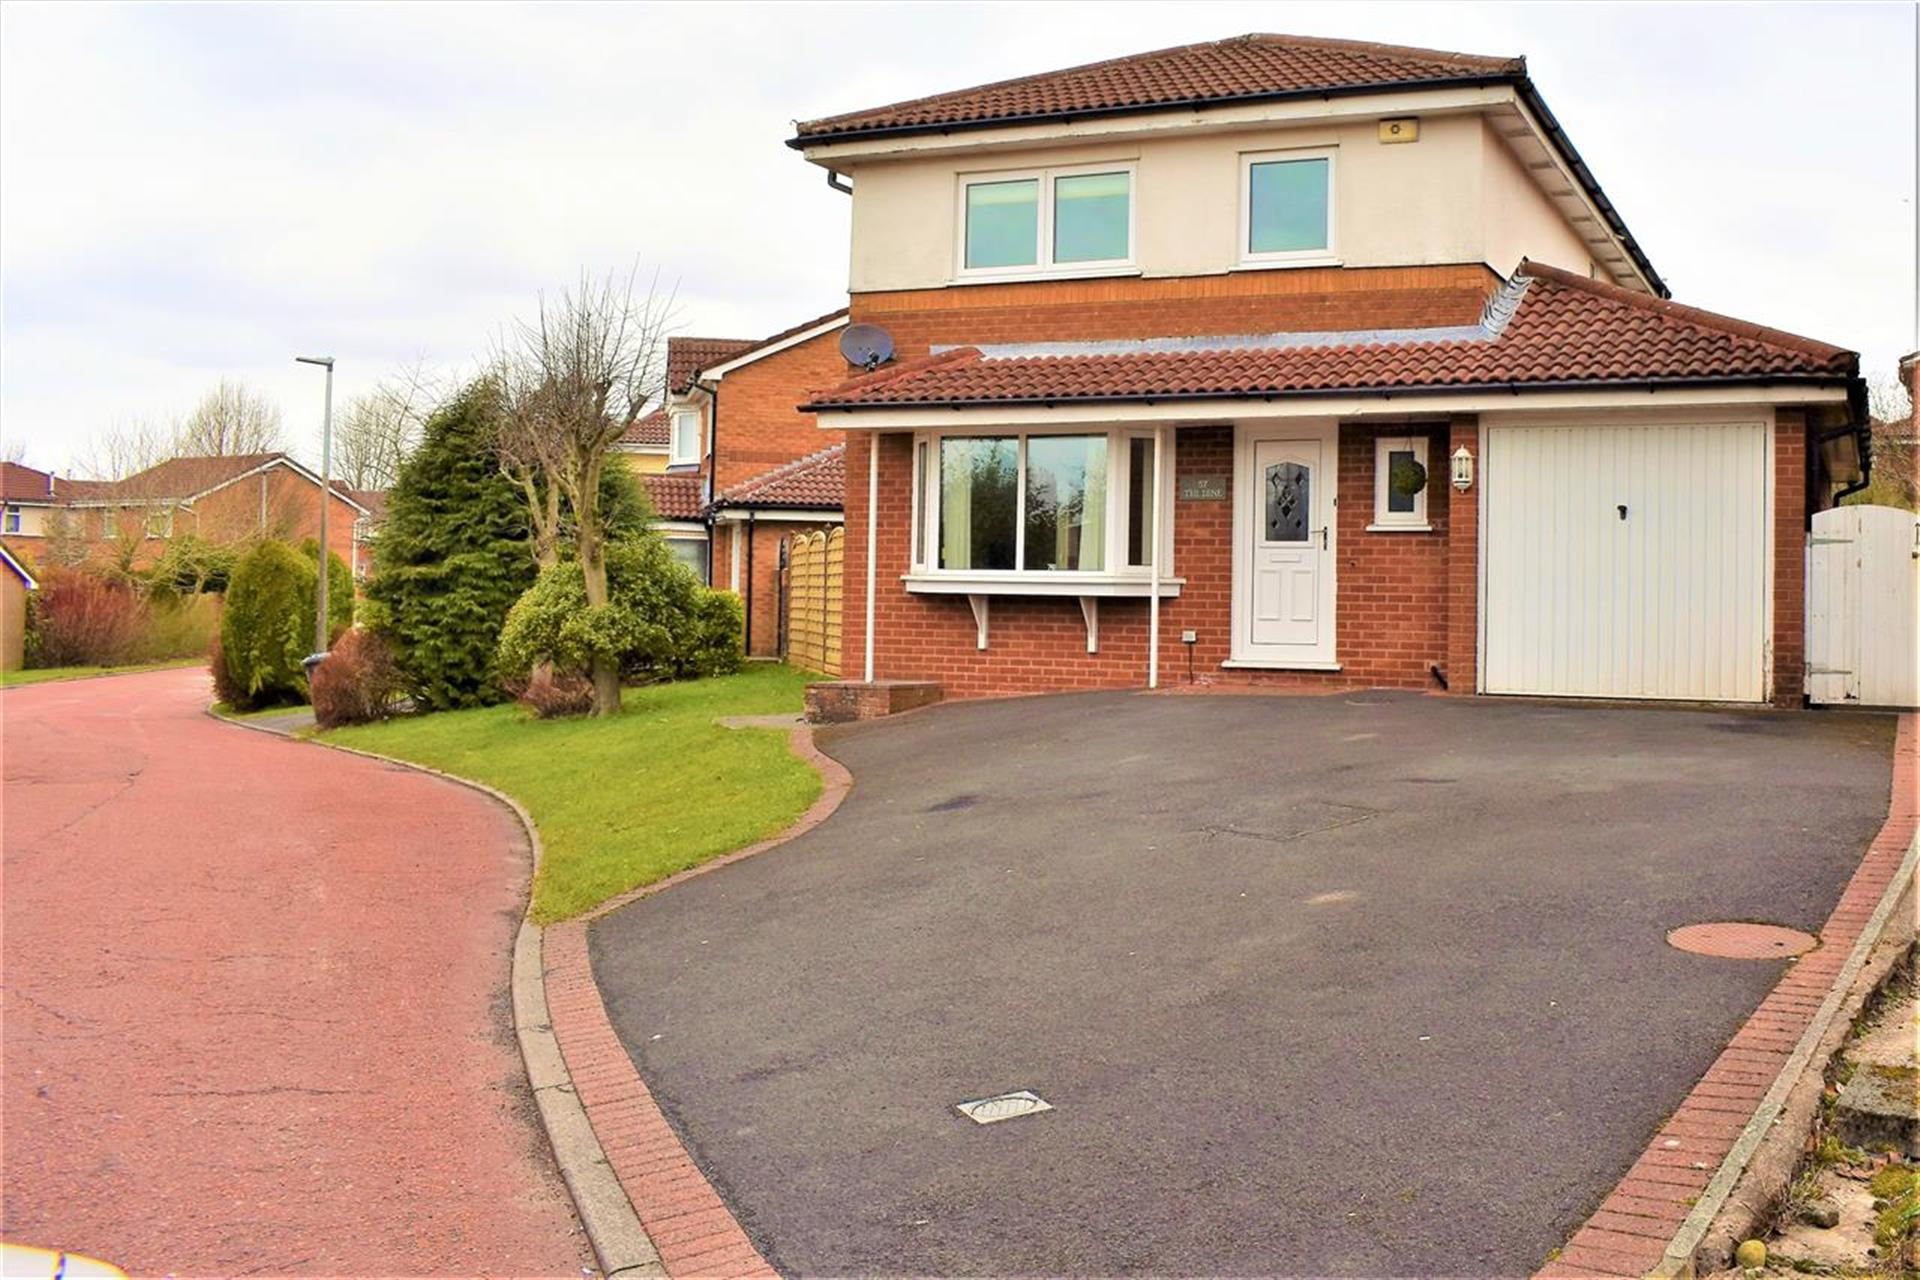 4 Bedroom Detached House For Sale - Main Picture